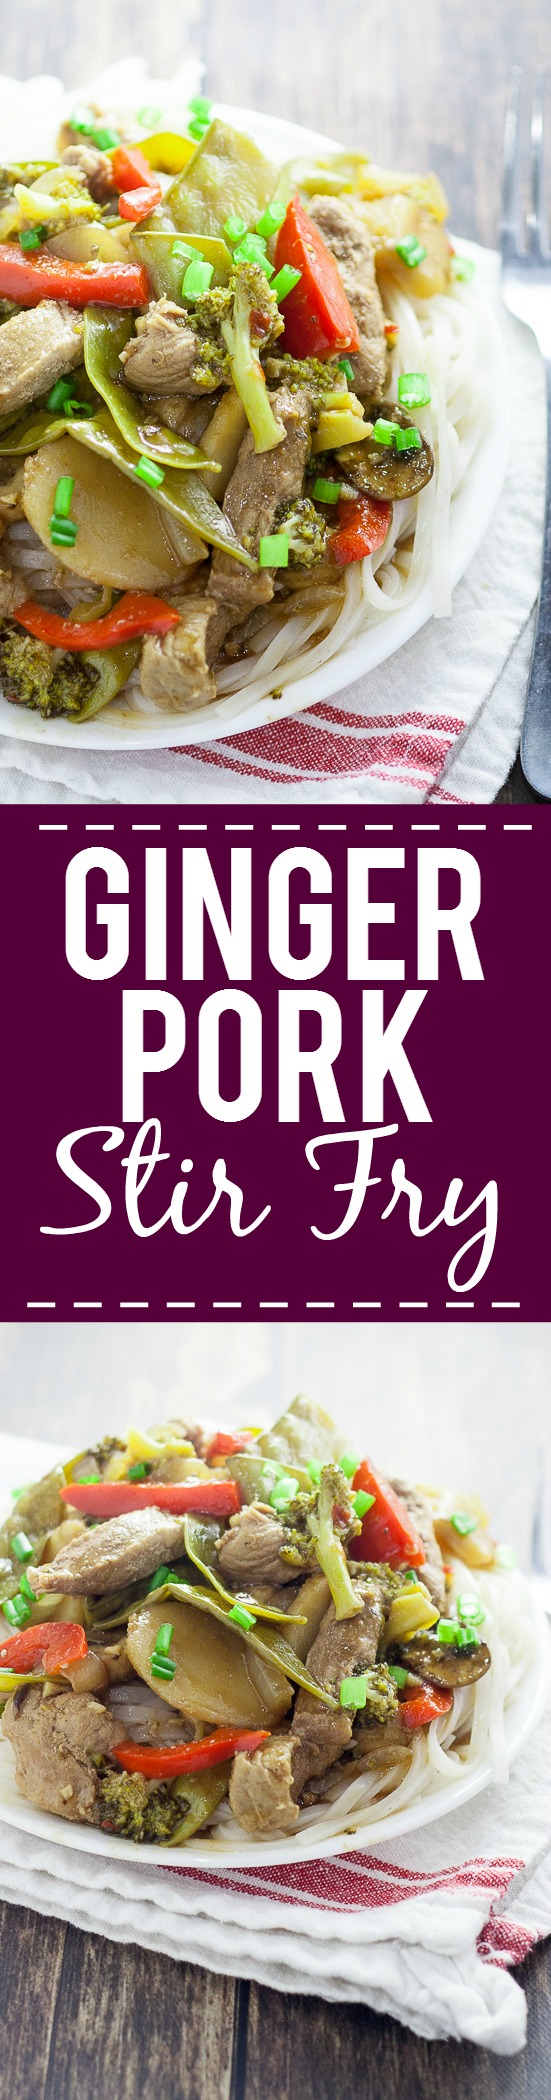 Ginger Pork Stir Fry Recipe -Super easy and healthy too, this Ginger Pork Stir Fry recipe is packed with flavor from teriyaki, ginger, garlic, pork, and more, plus all of your favorite veggies. Perfect quick and easy healthy family dinner recipe!